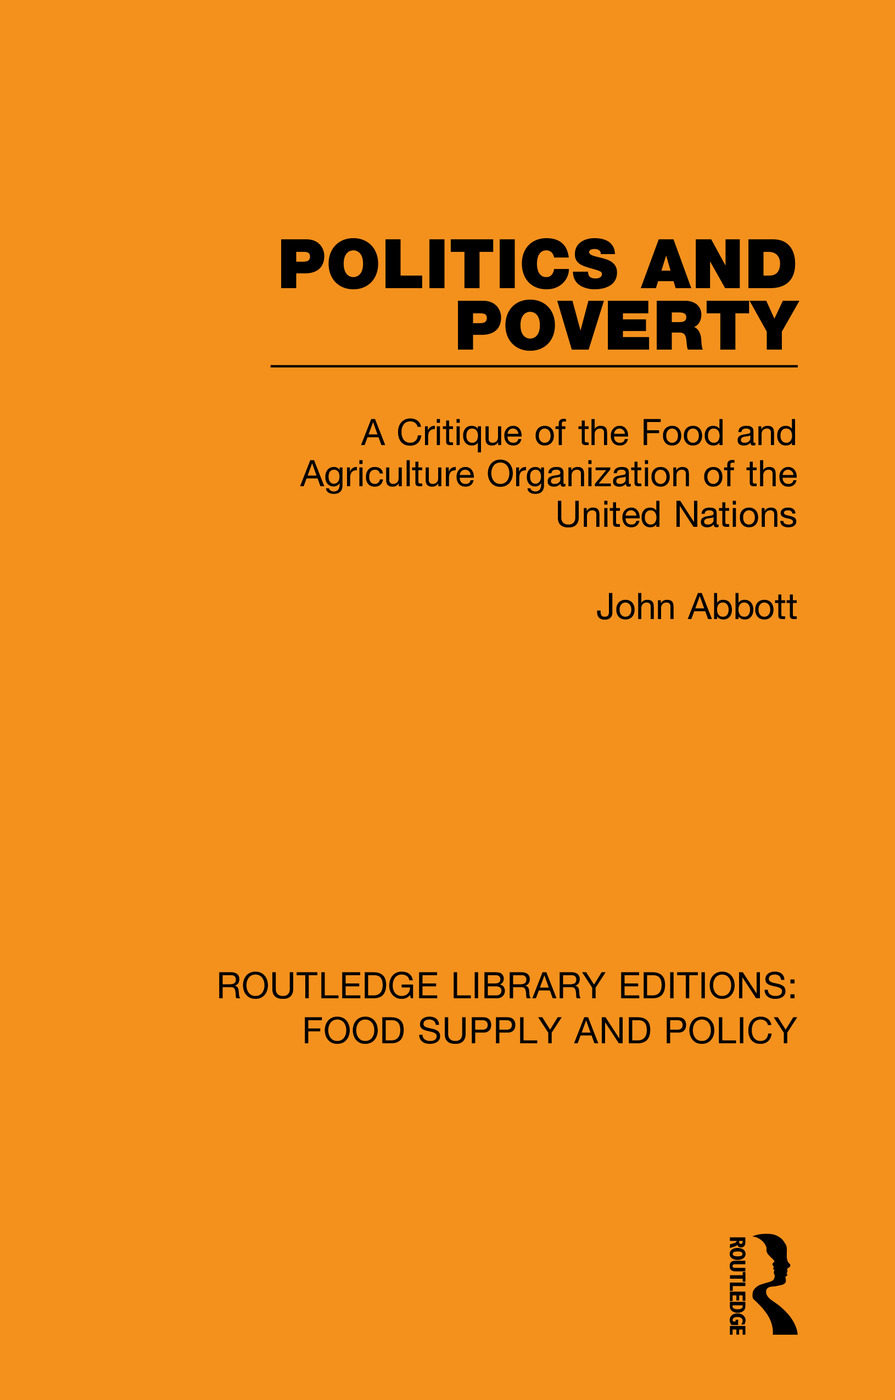 Politics and Poverty: A Critique of the Food and Agriculture Organization of the United Nations book cover